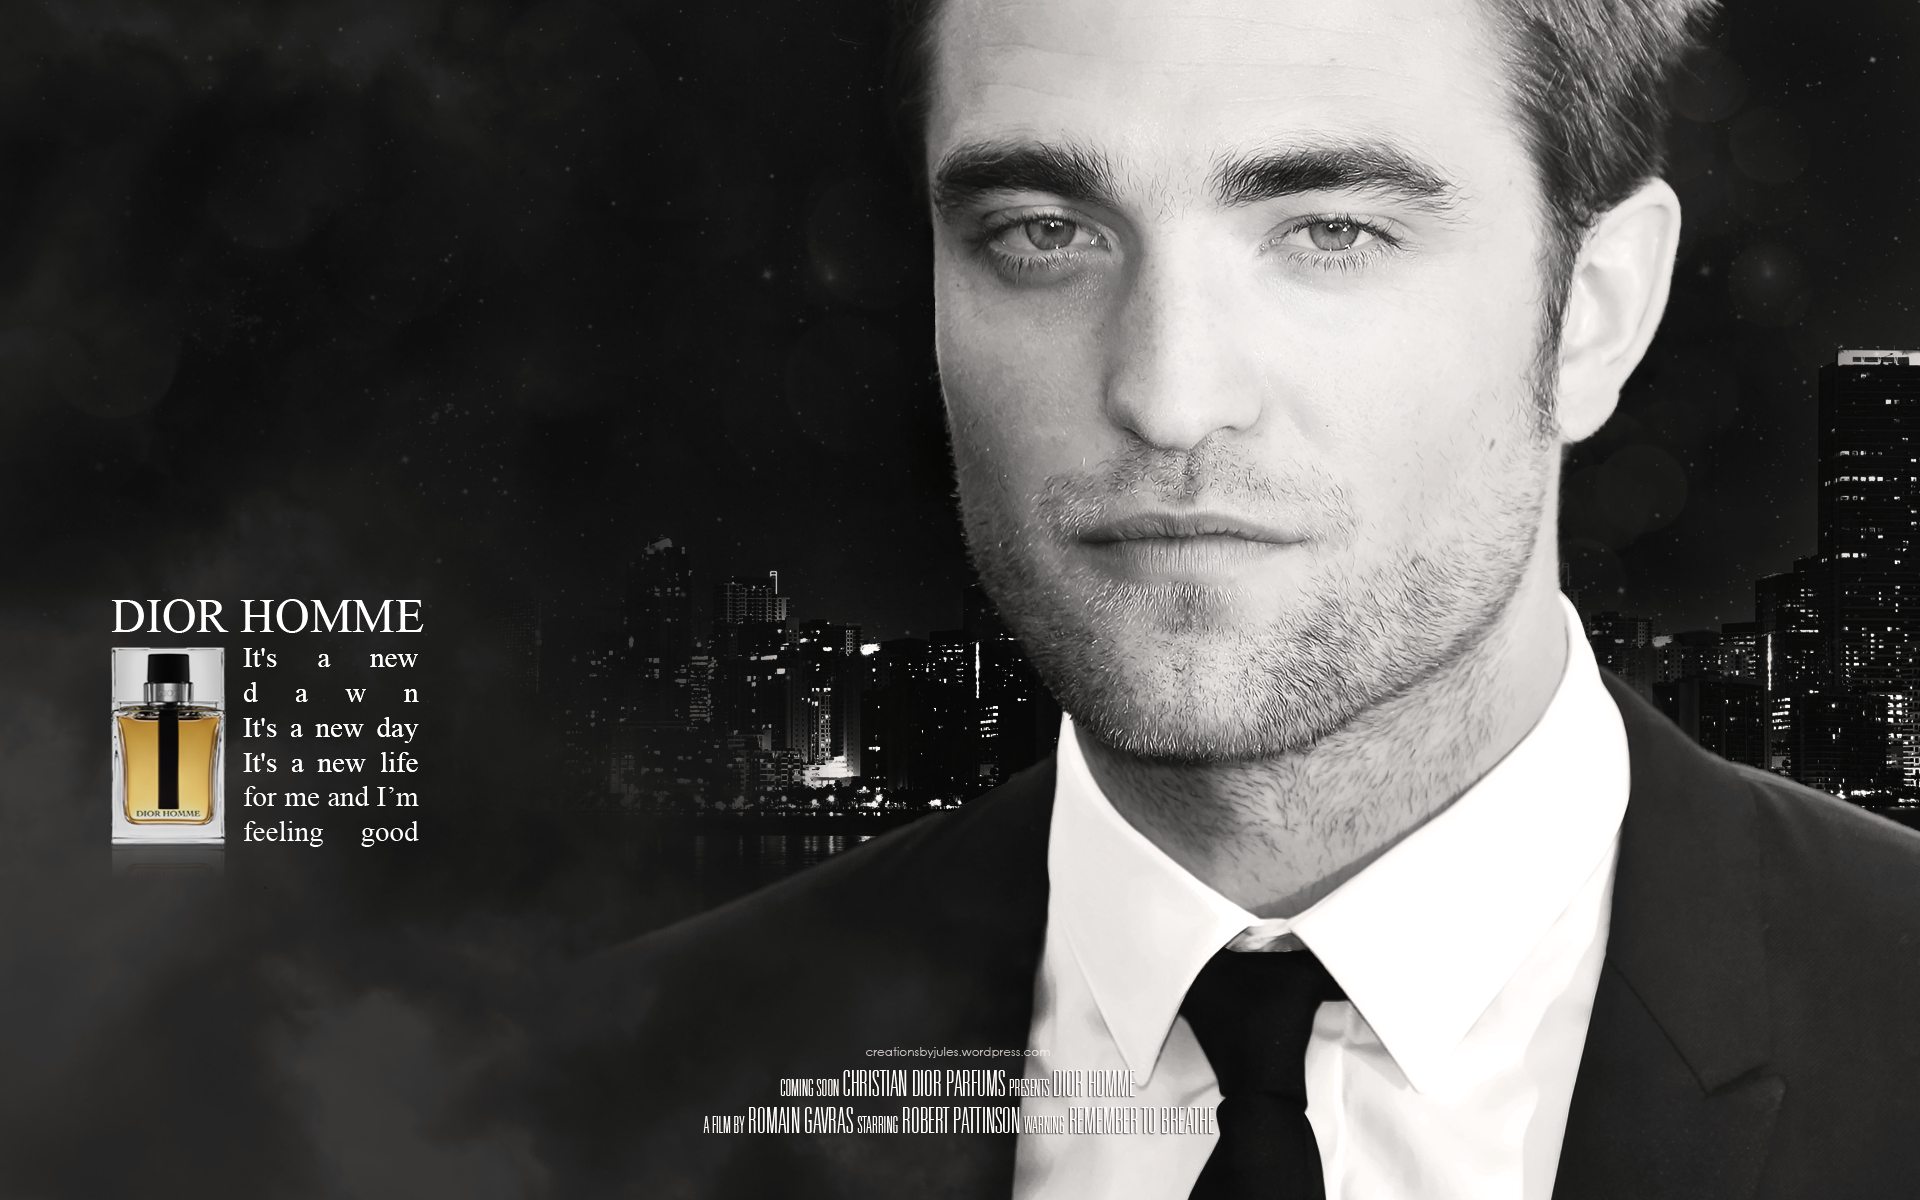 ROBERT PATTINSON - Pagina 3 Robert-Dior-Homme-ads-robert-pattinson-and-kristen-stewart-34784321-1920-1200